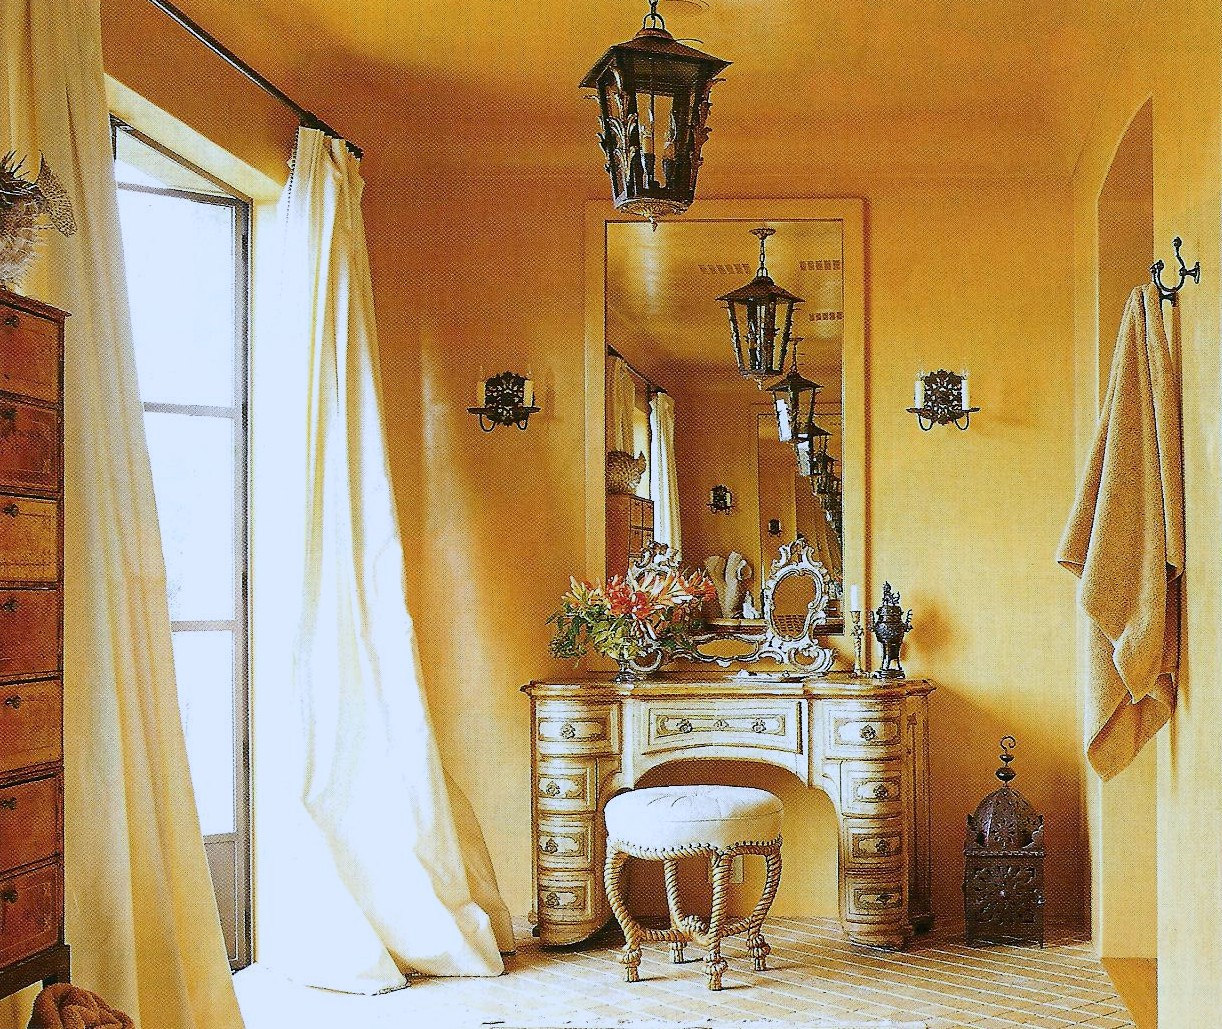 Decorating tips for adding a tuscan touch to your home Tuscan style bathroom ideas